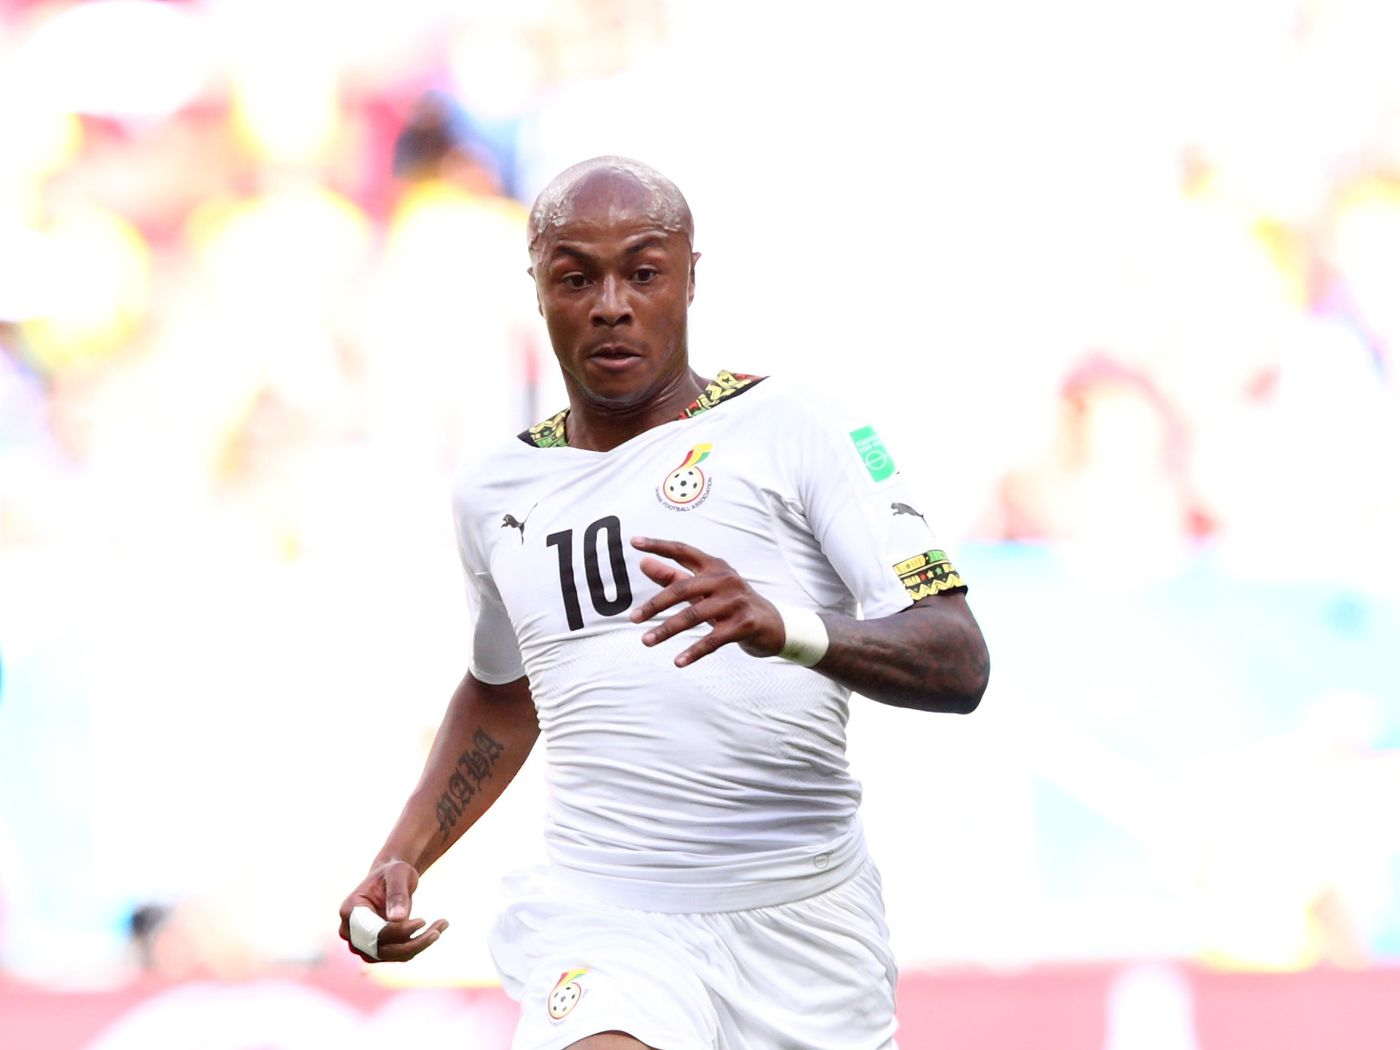 Cameroon vs  Ghana 2017 live stream: Time, TV schedule, and